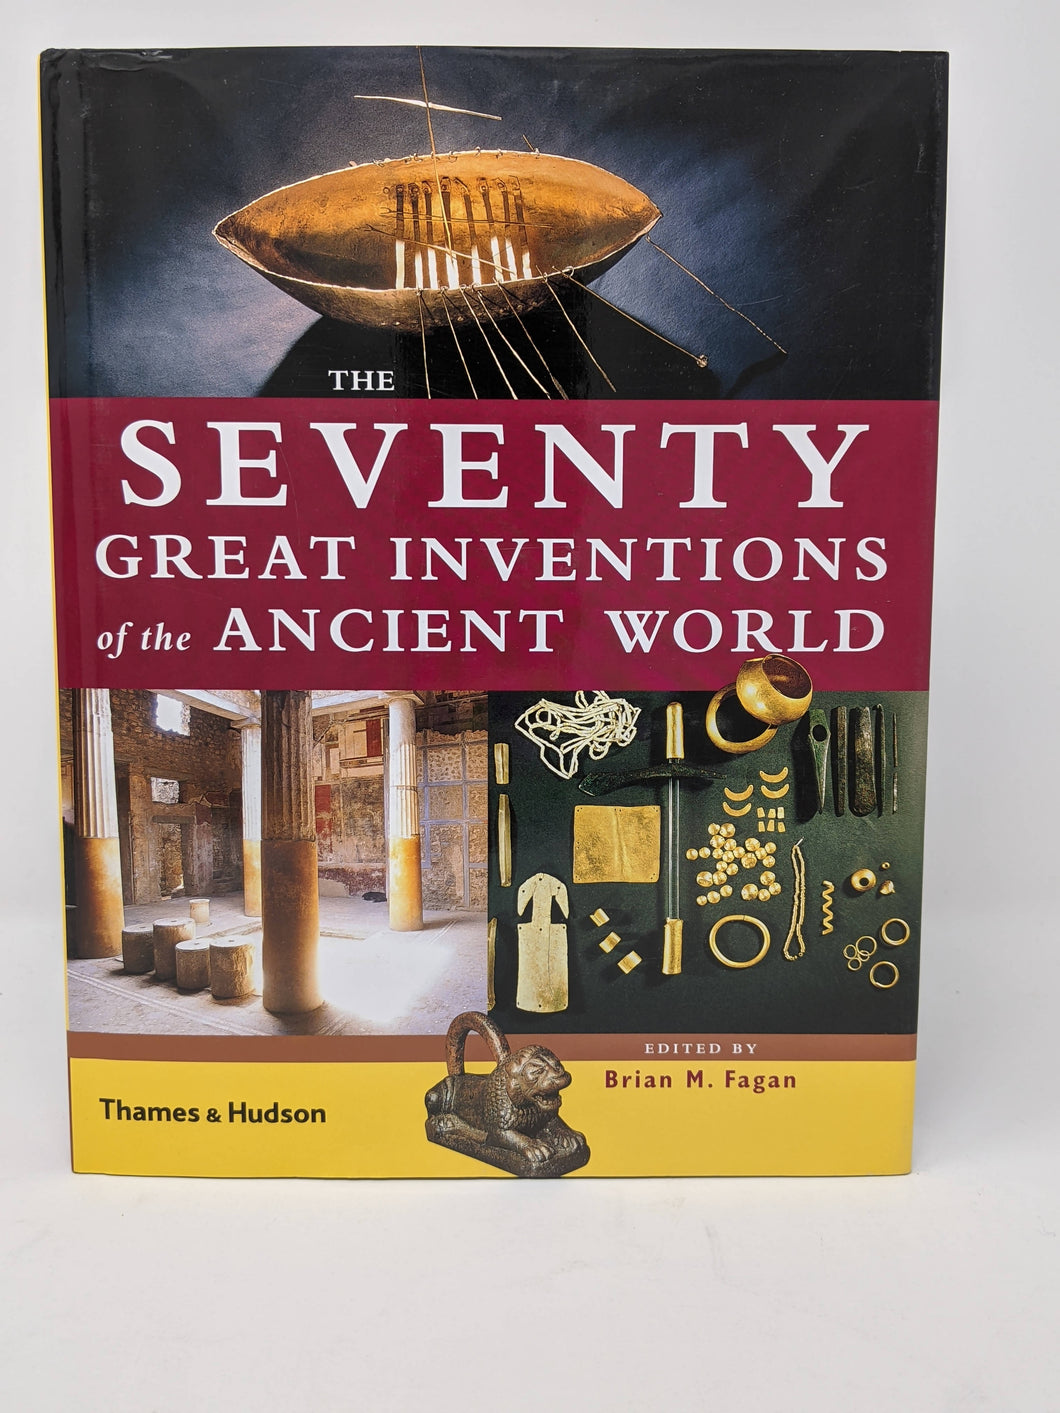 SALE The Seventy Great Inventions of the Ancient World edited by Brian M. Fagan